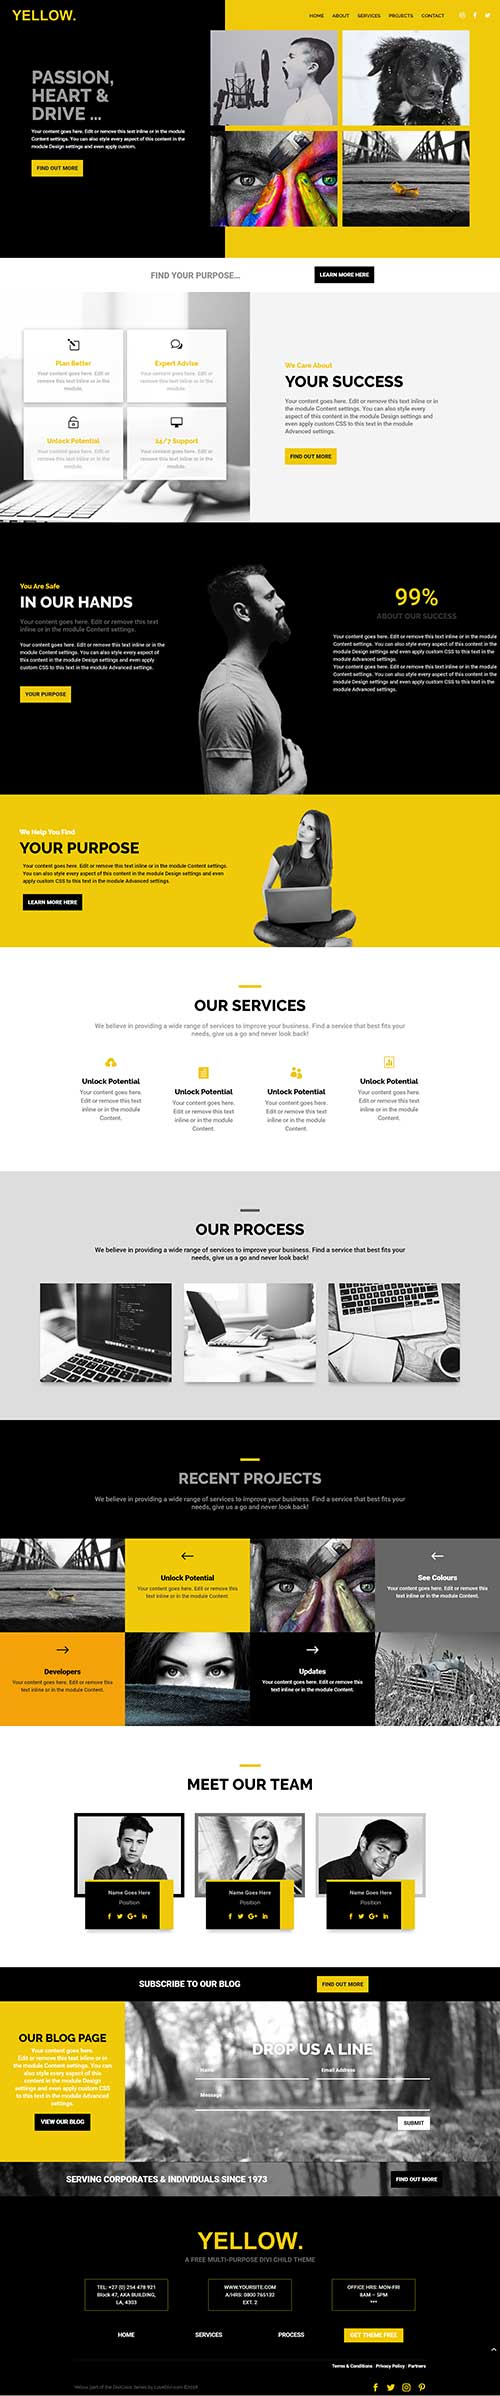 1-page Divi layout free